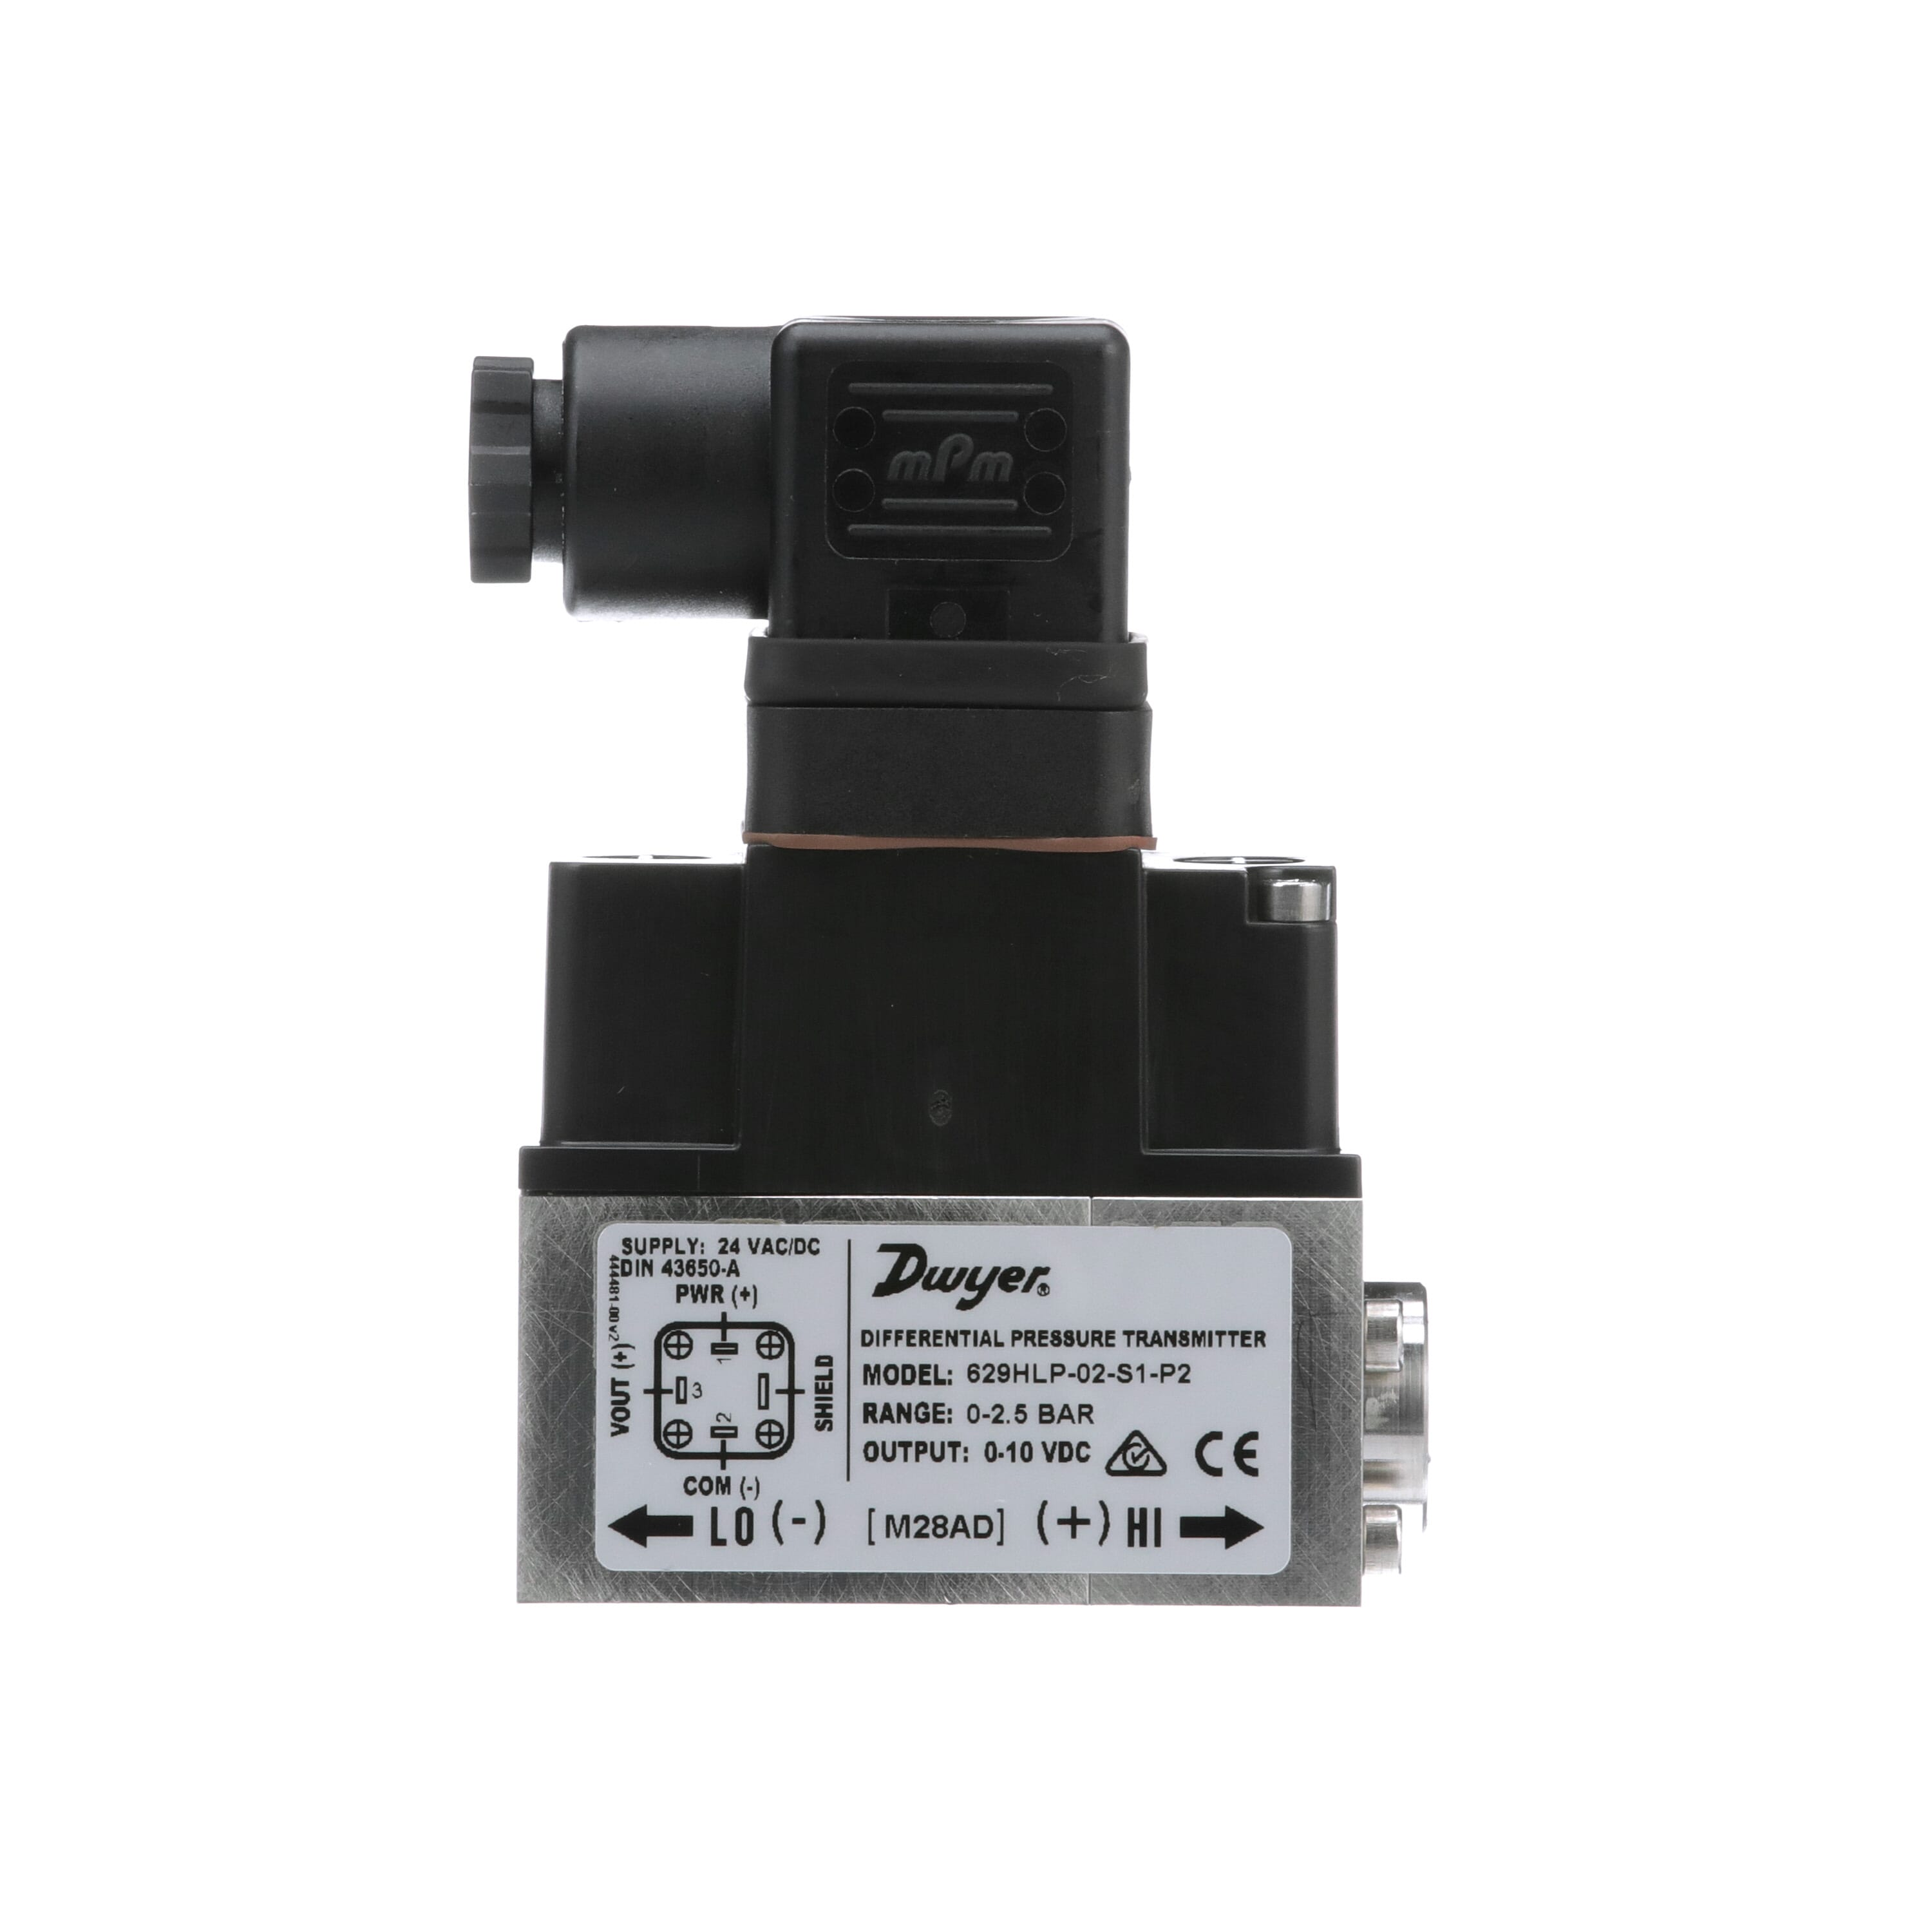 4 to 20mA DC Output 1//4 MNPT Intrinsically Safe Pressure Transmitter 0 to 300 psi